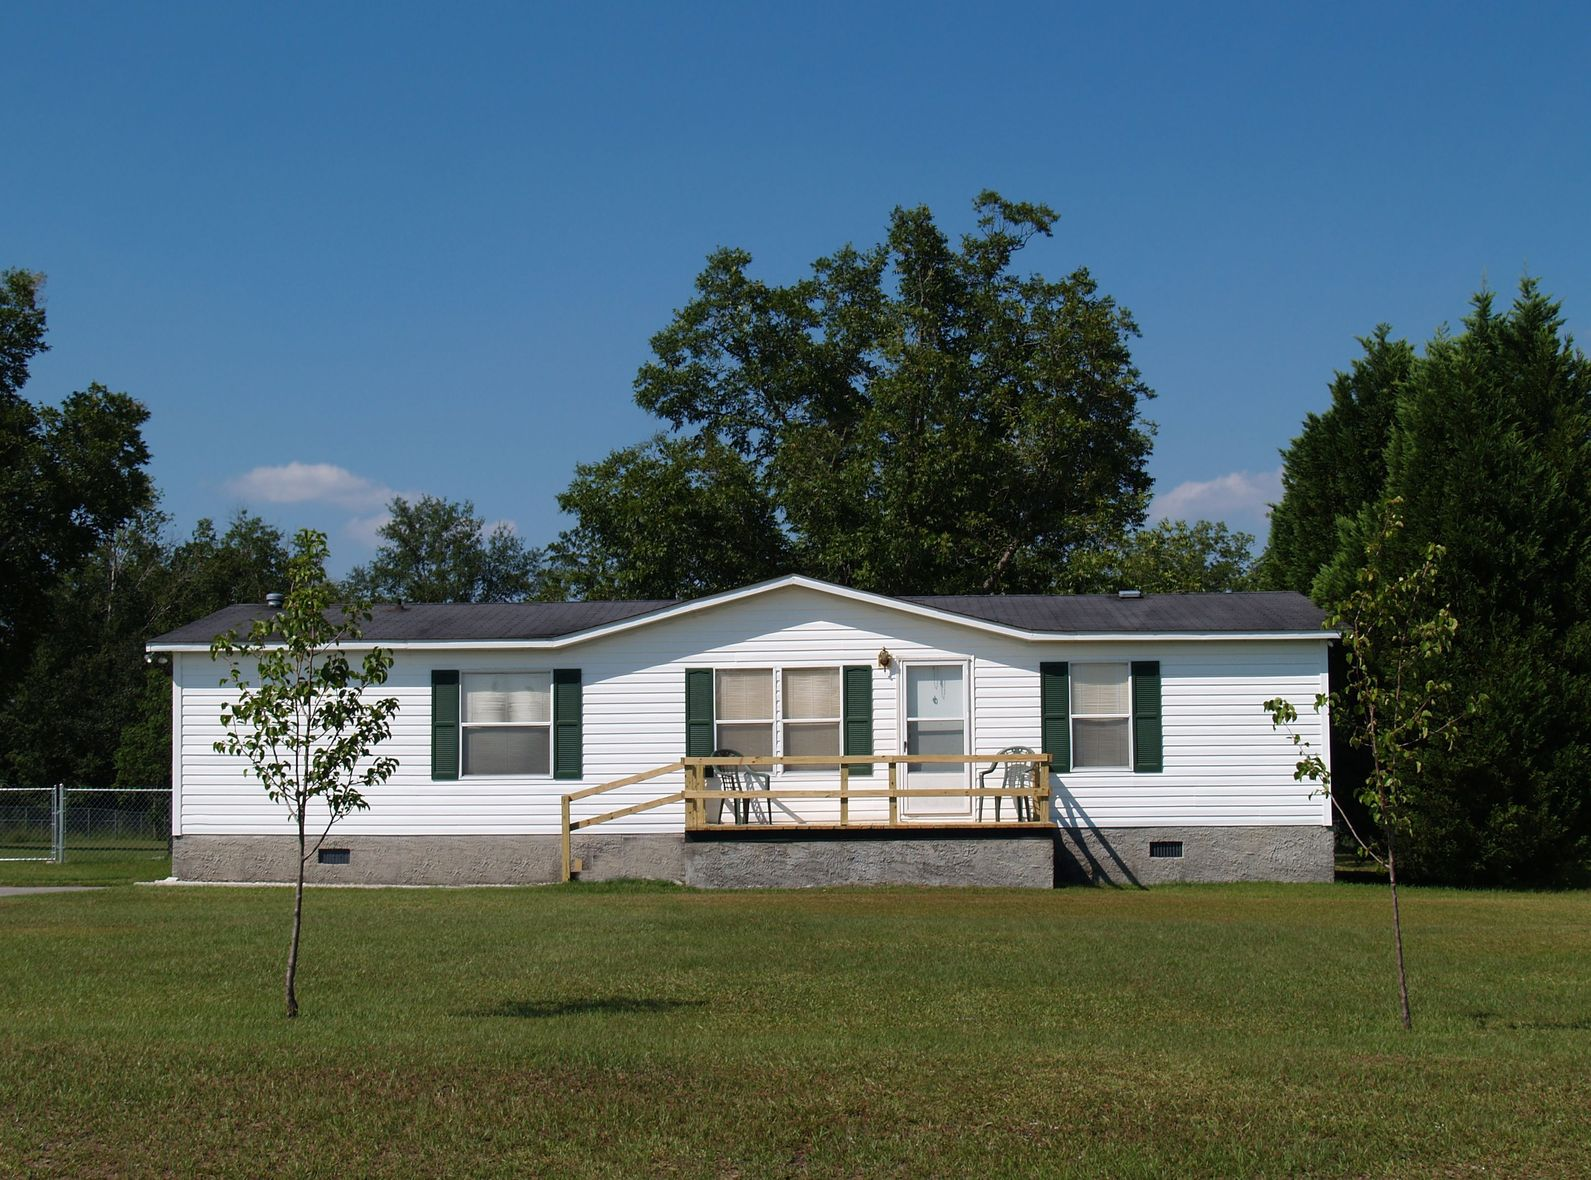 Katy & Cypress, TX. Mobile Home Insurance